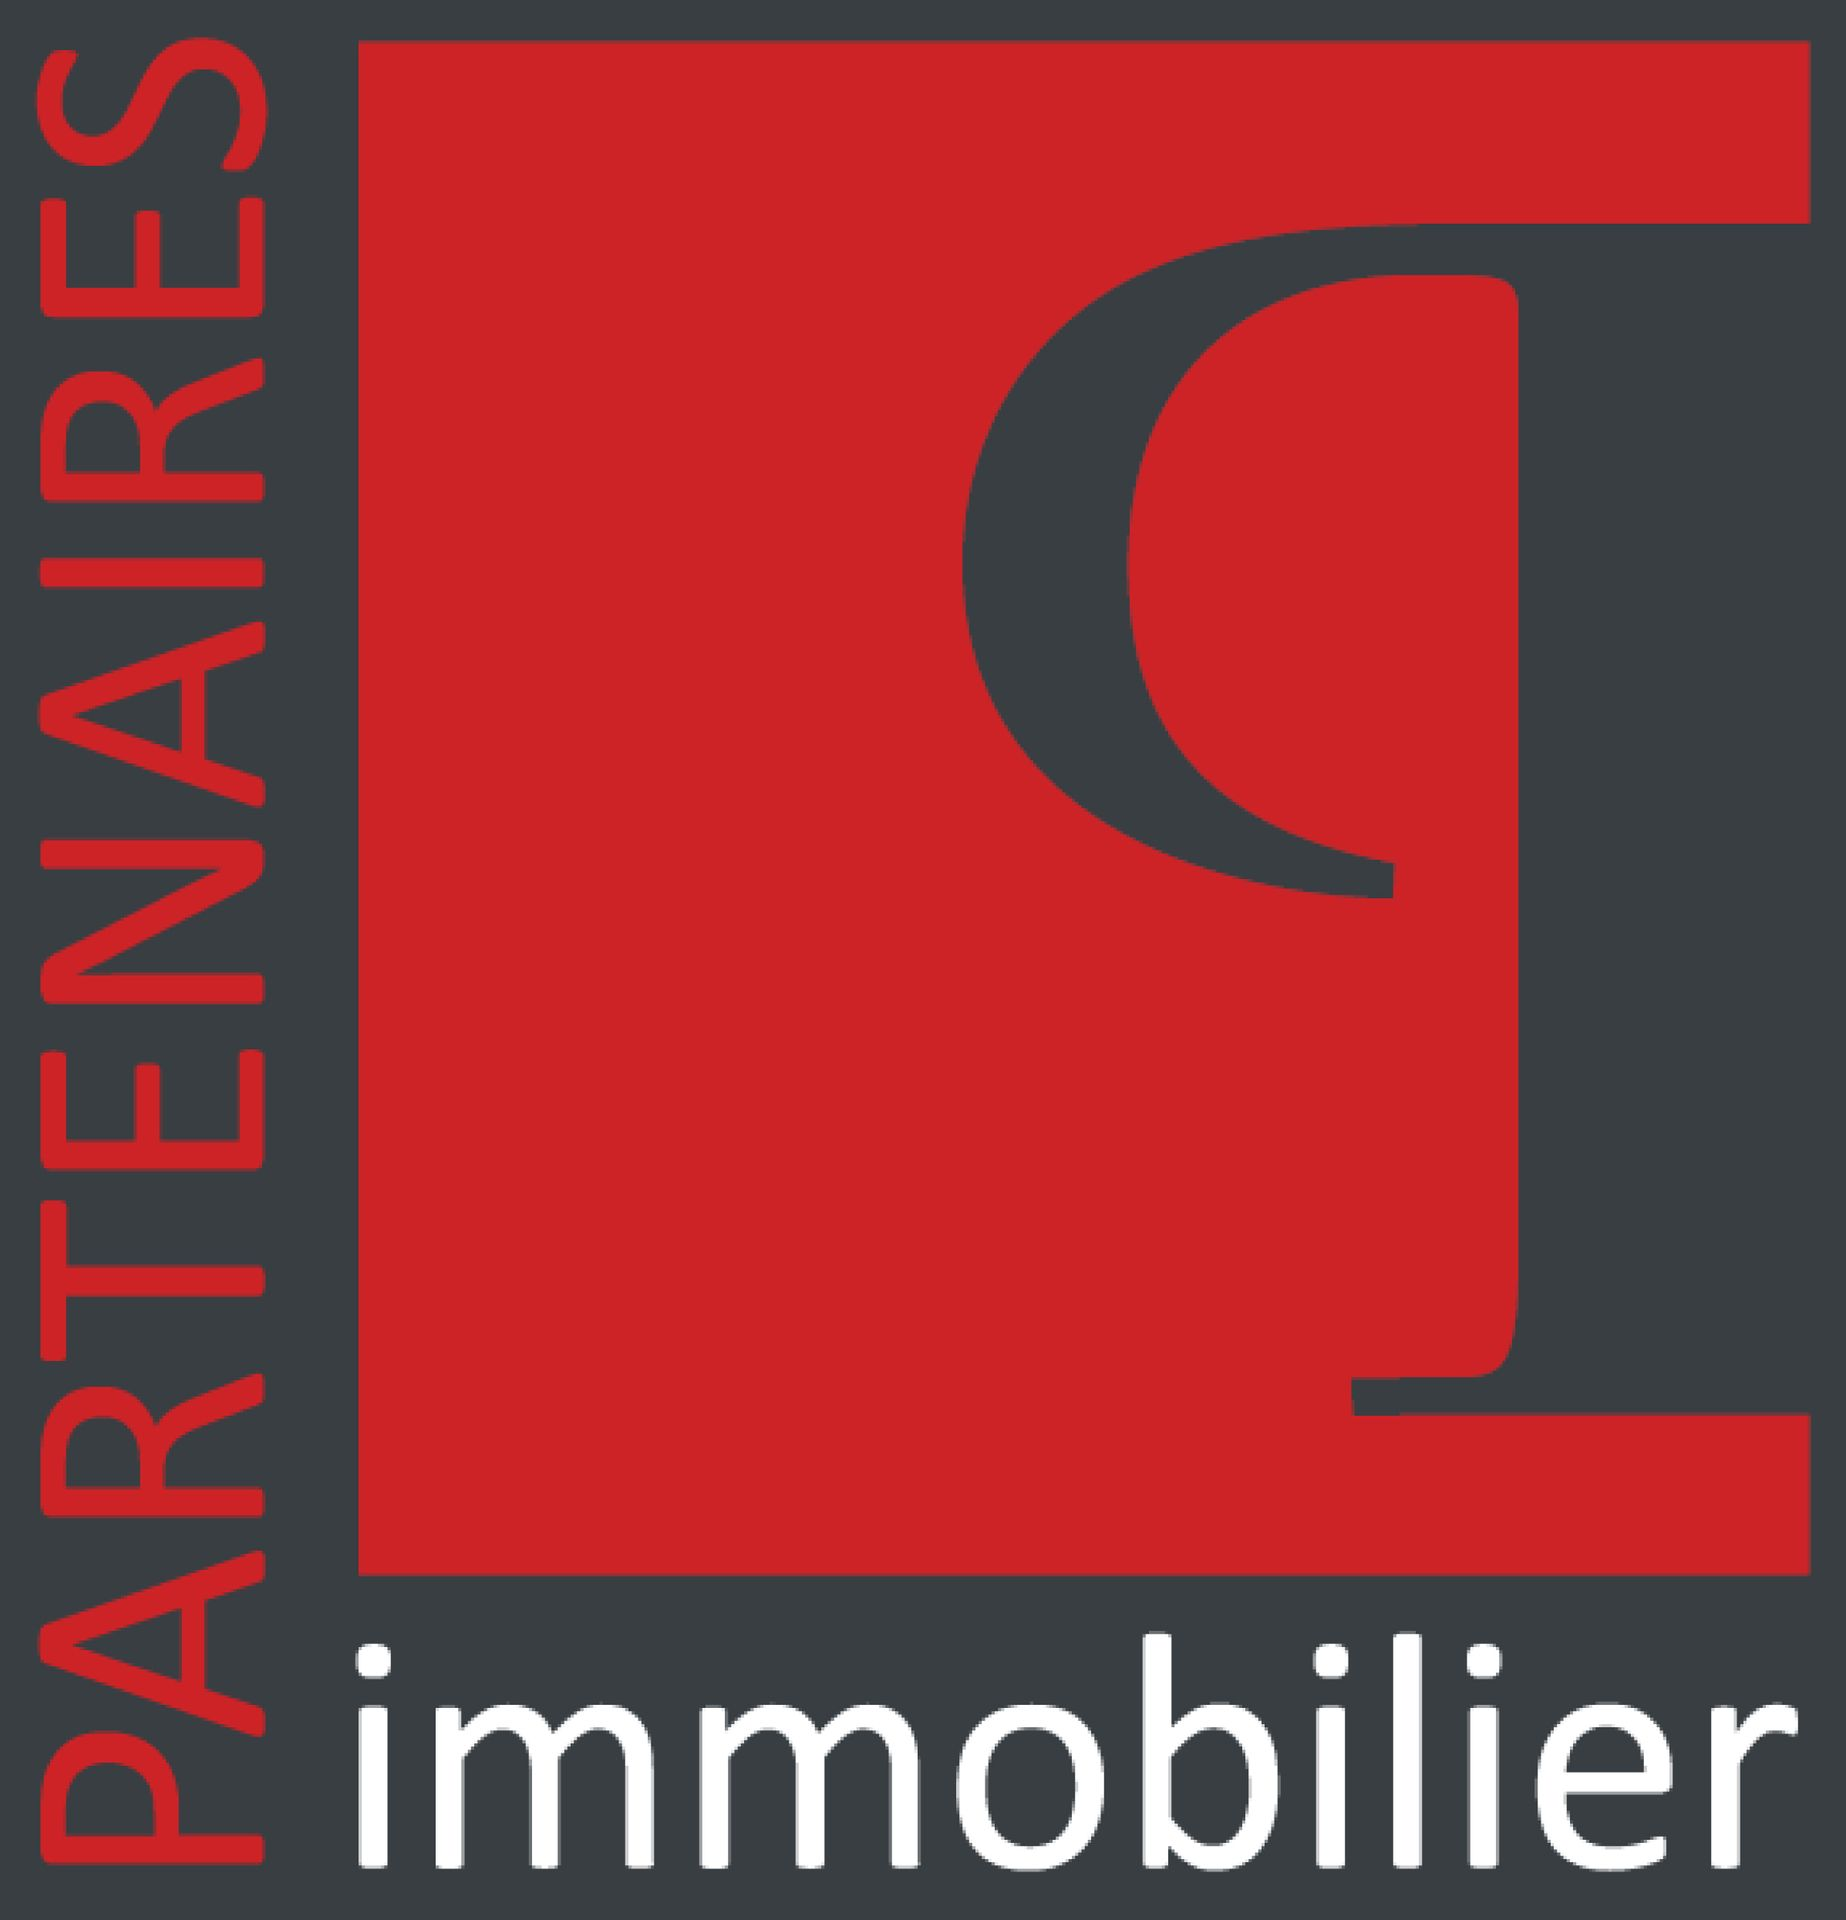 Agence PARTENAIRES Immobilier - Agence immobilière - Le Chesnay